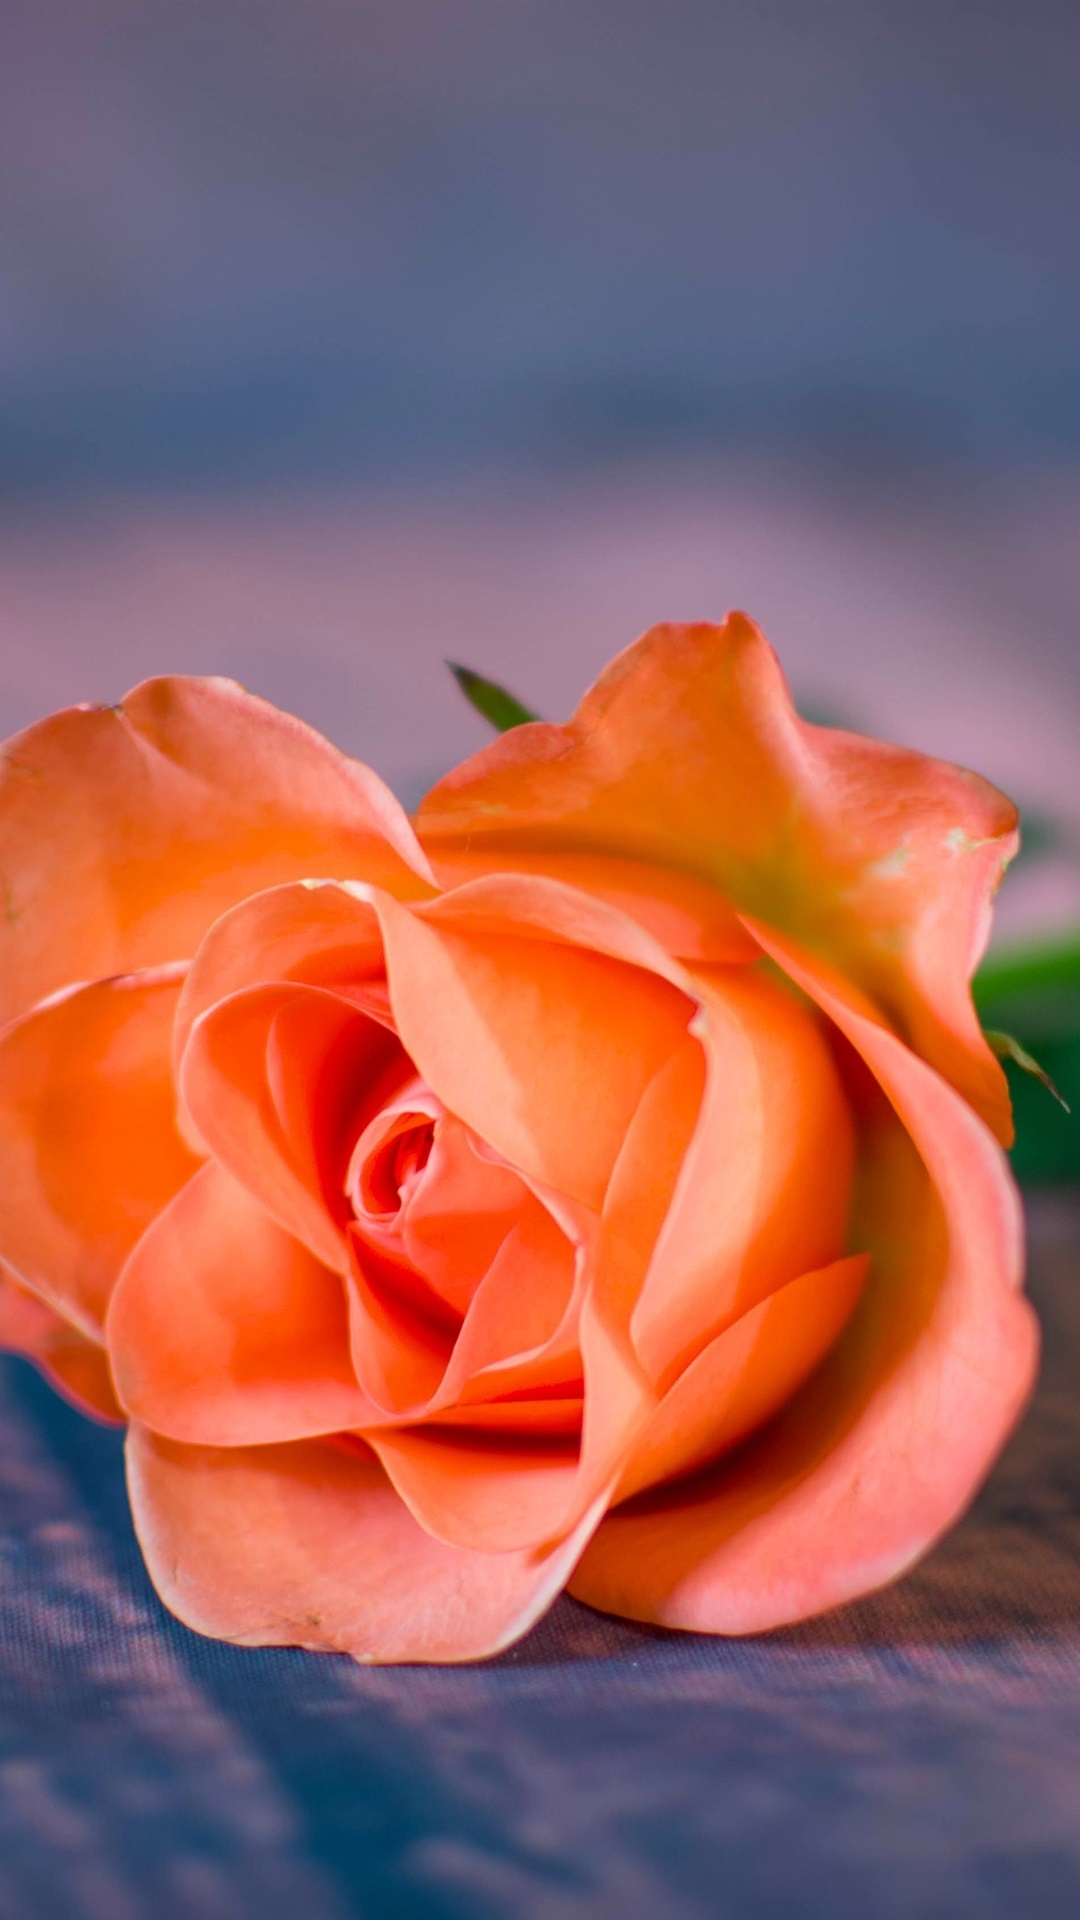 Orange Rose Close Up Bokeh 1080x1920 Iphone 8 7 6 6s Plus Wallpaper Background Picture Image